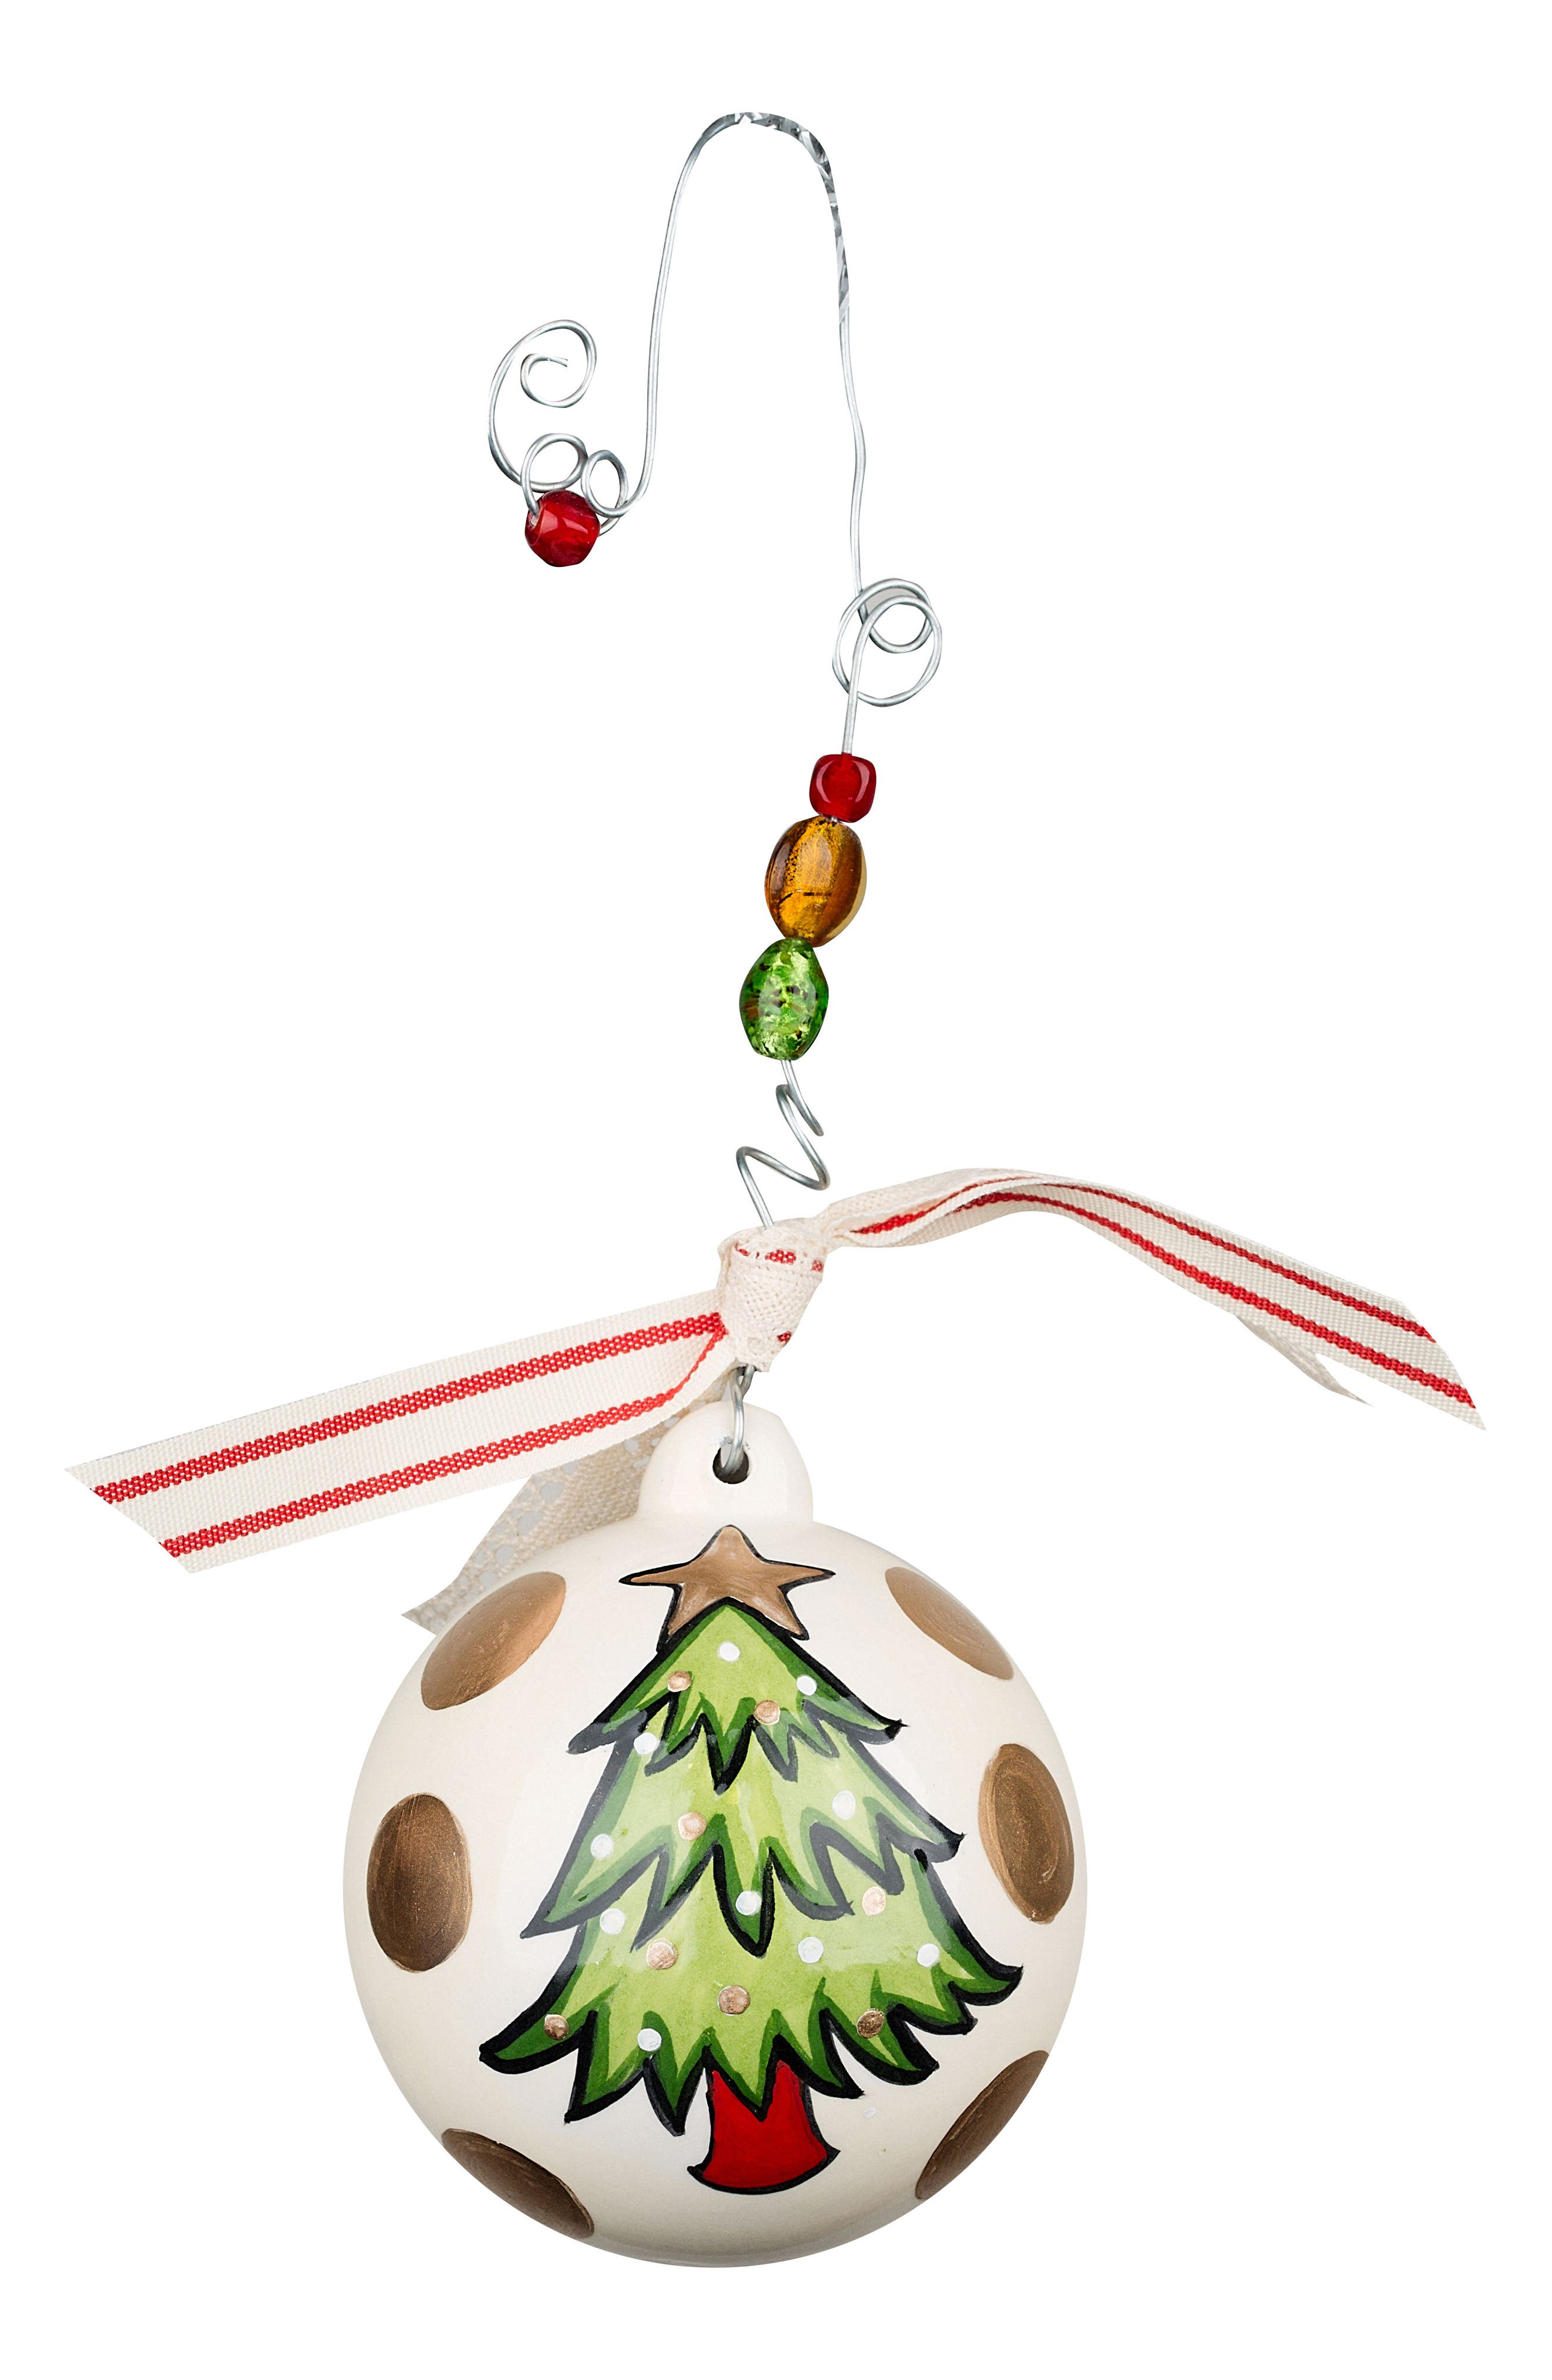 Most Wonderful Time of the Year Ball Ornament,                             Alternate thumbnail 2, color,                             900